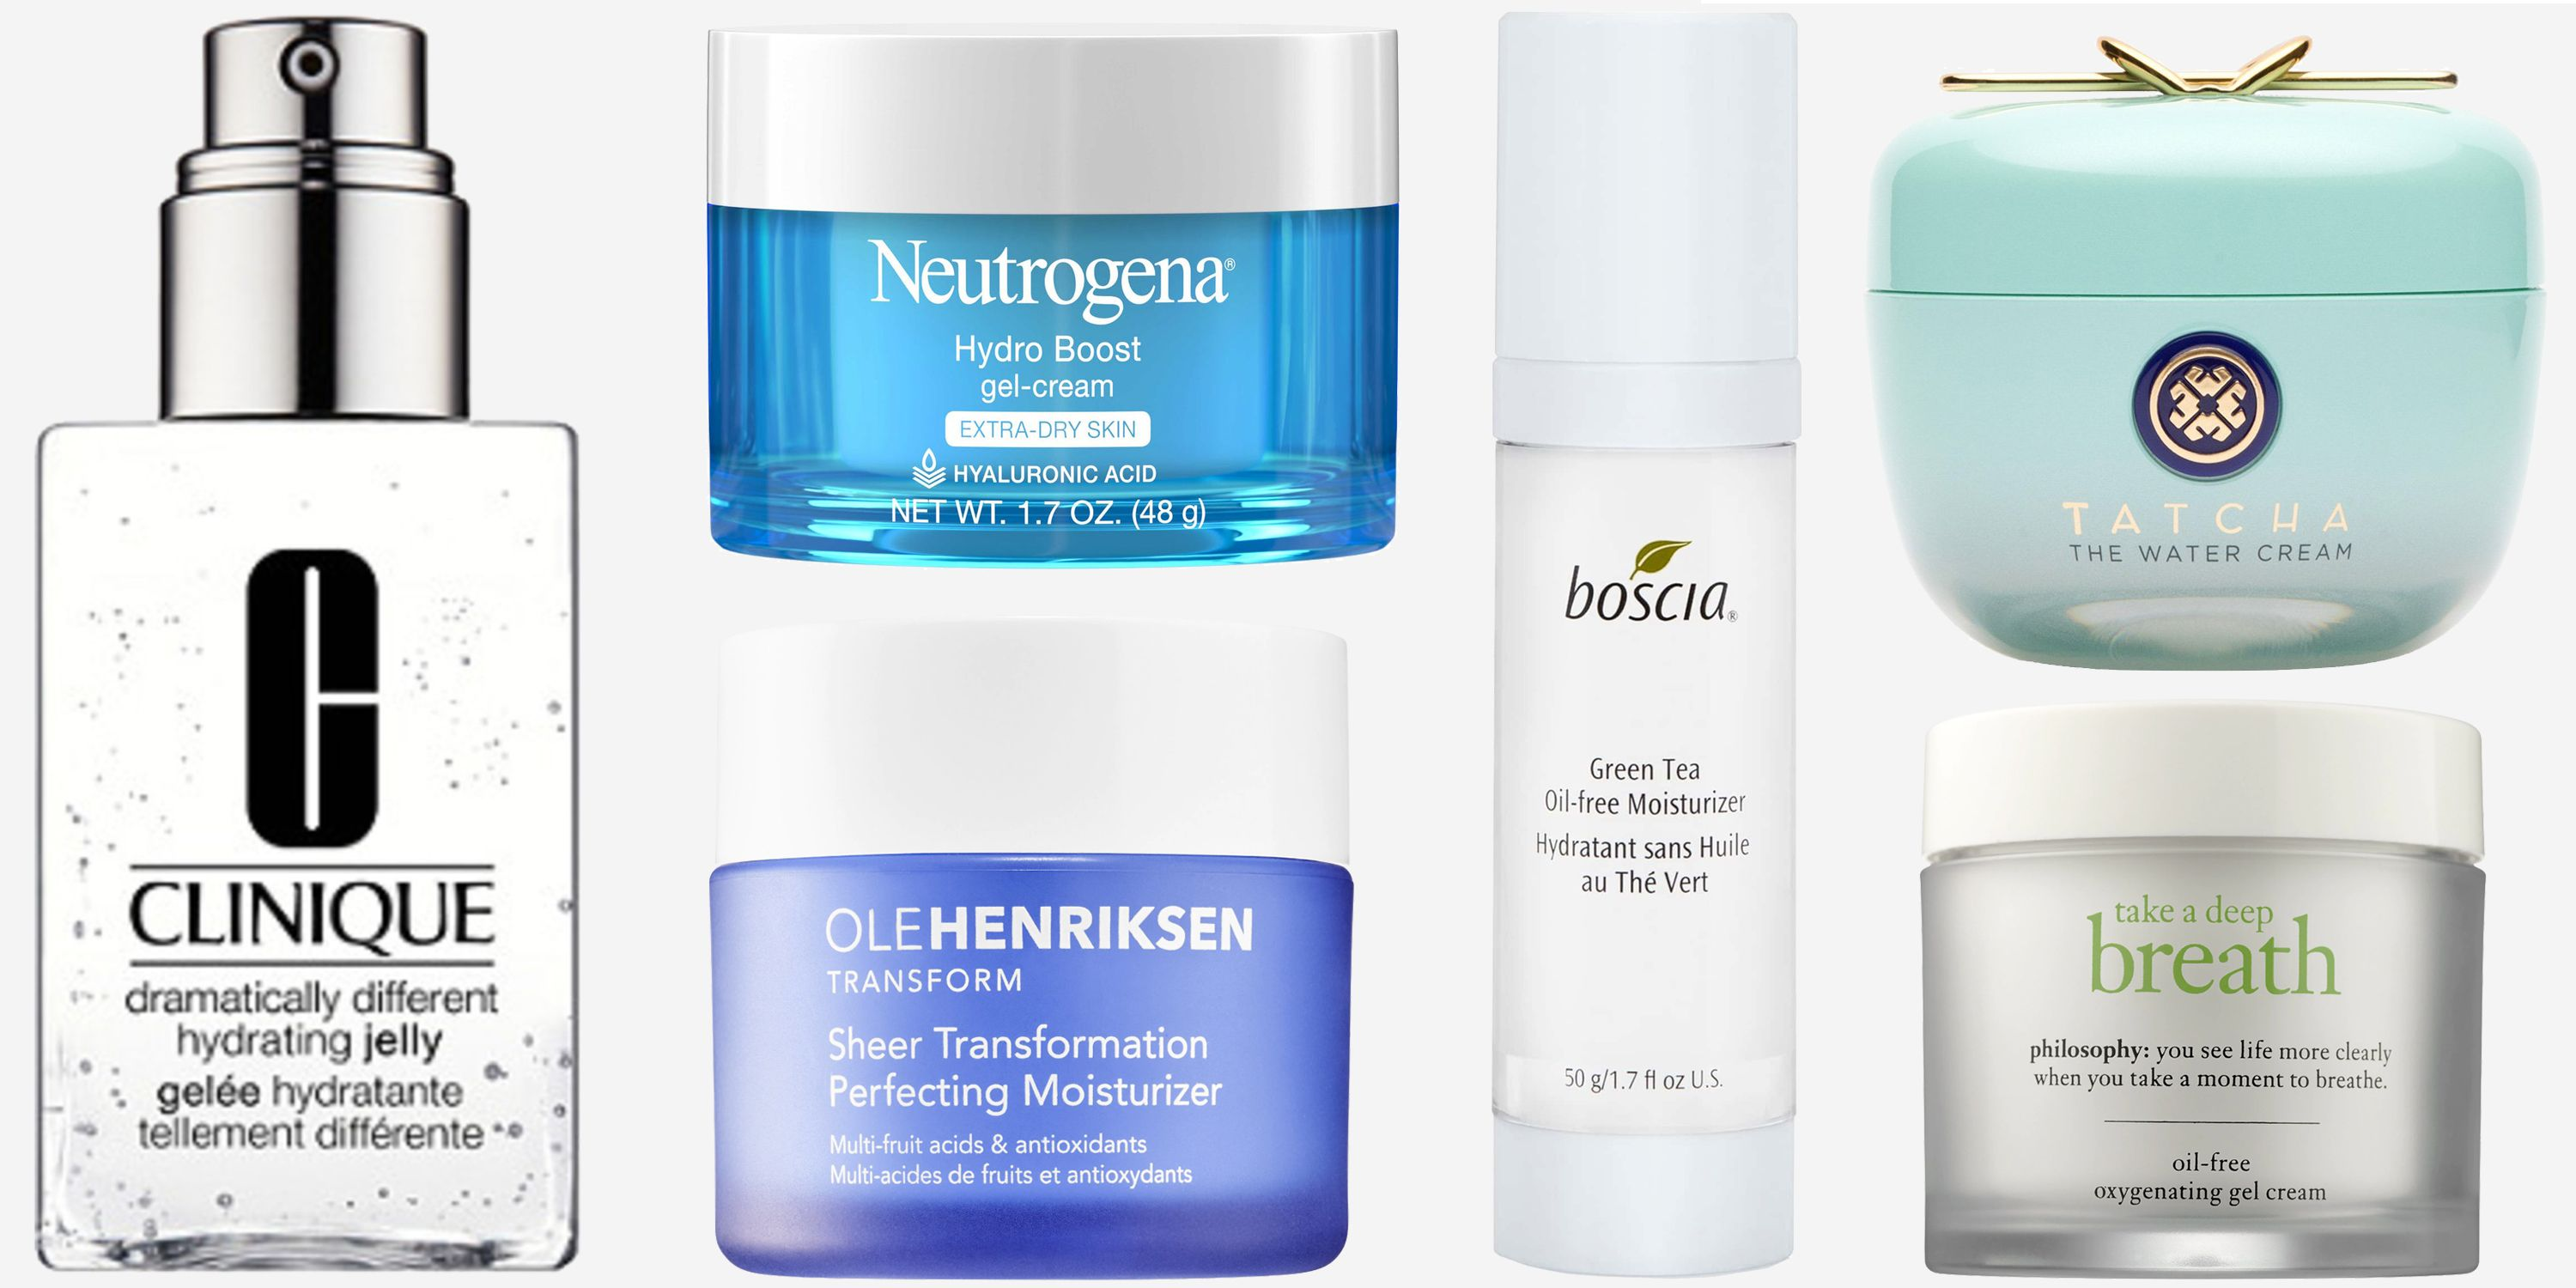 18 Best Oil-Free Moisturizers - Facial Moisturizers for Oily